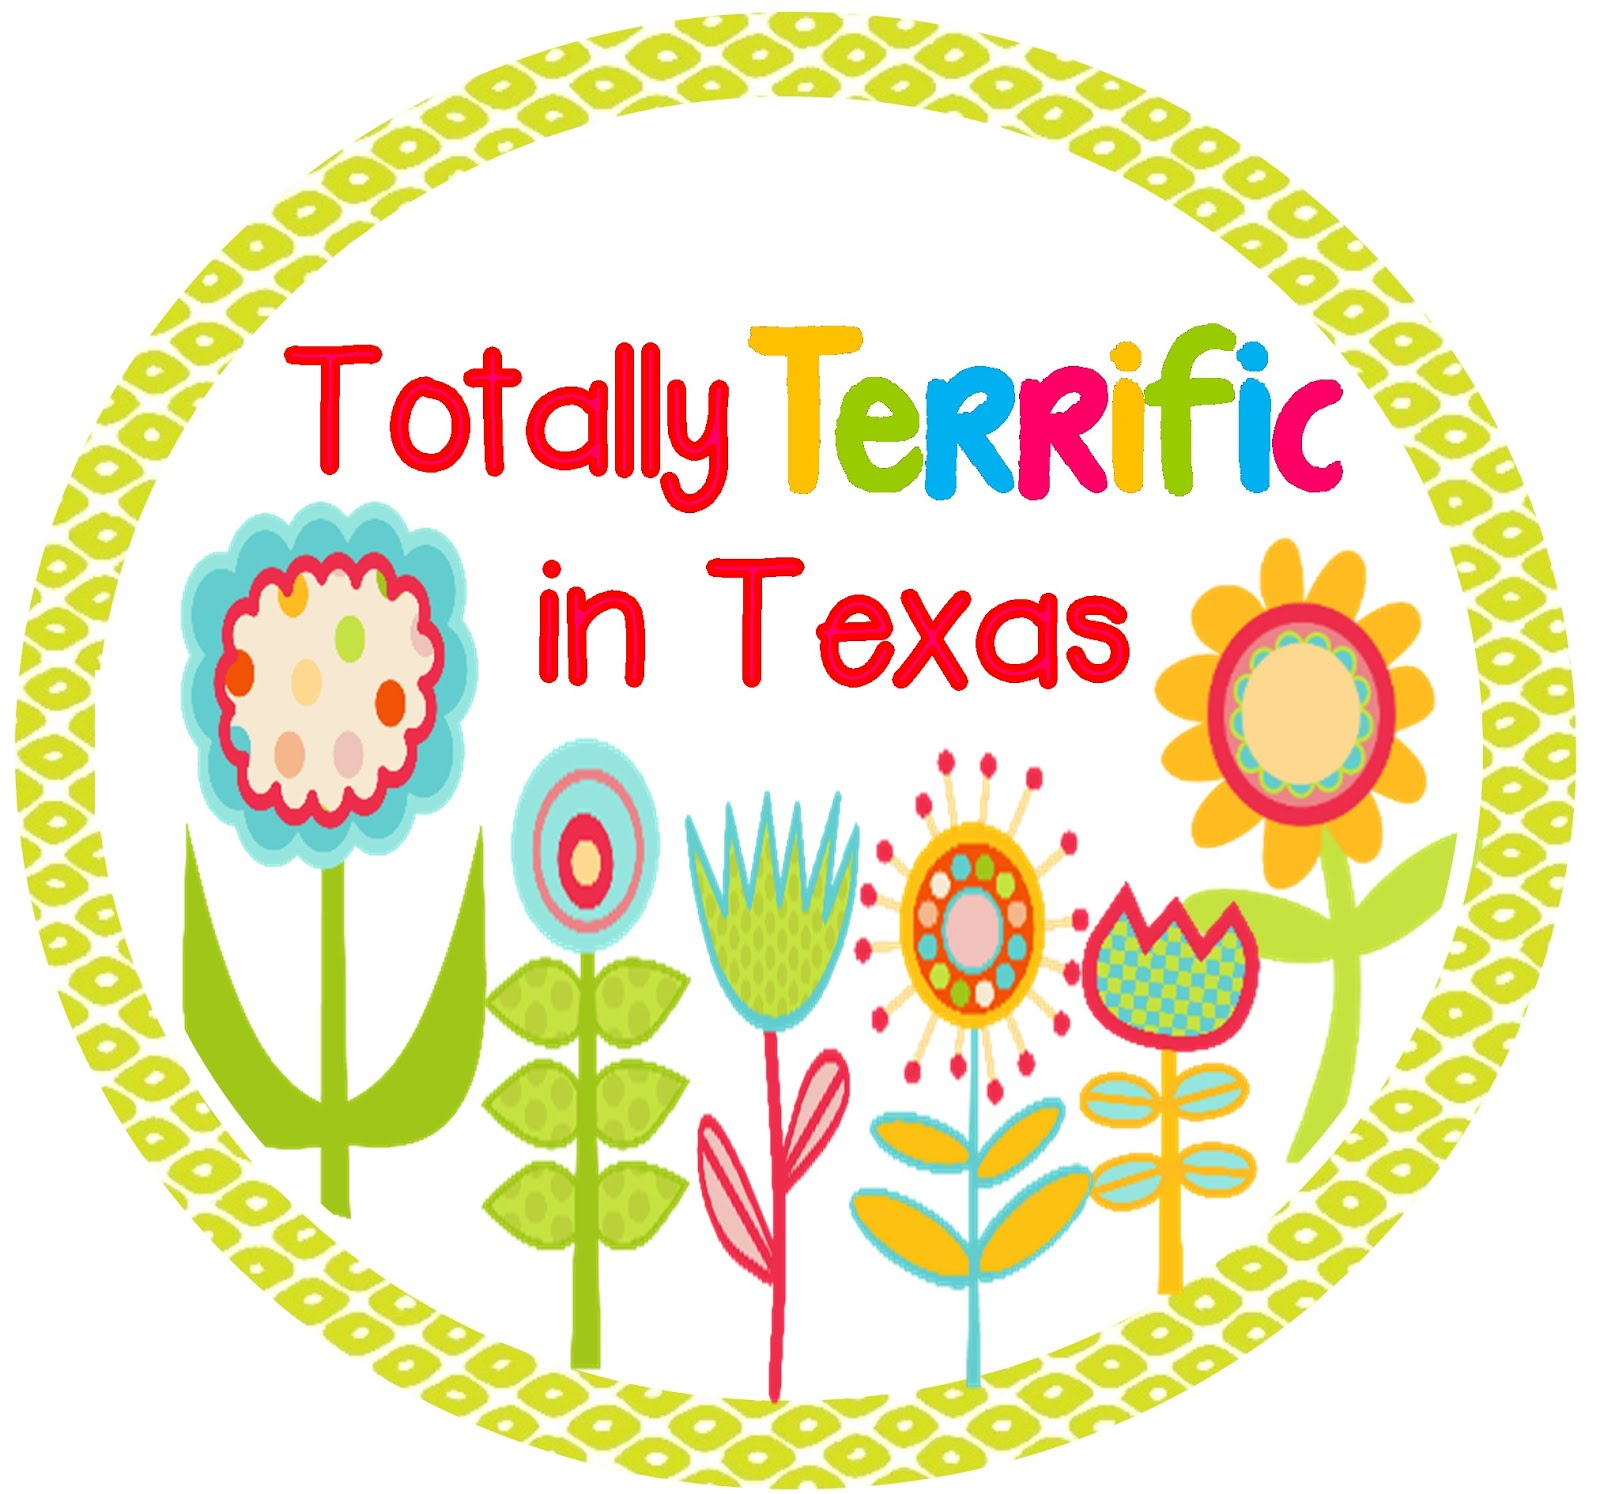 Clipart images tonight s going to be terrific graphic Totally Terrific in Texas graphic